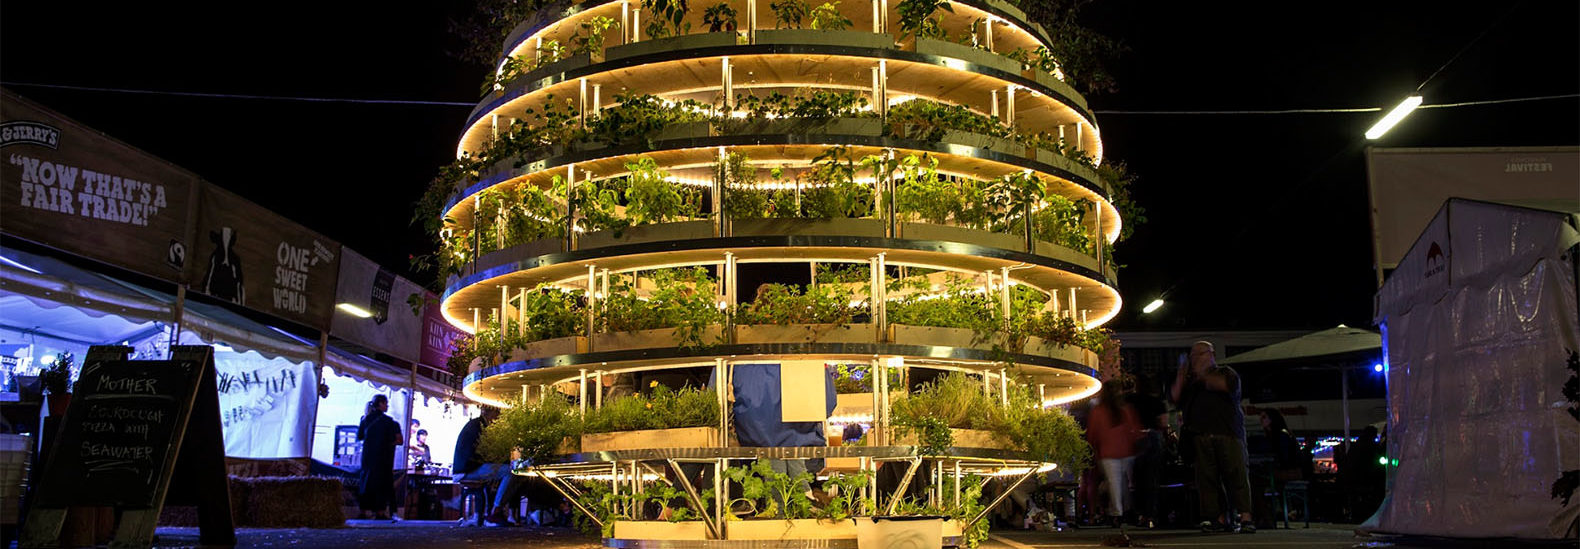 The Growroom is a spherical farm pod that brings agriculture to city ...